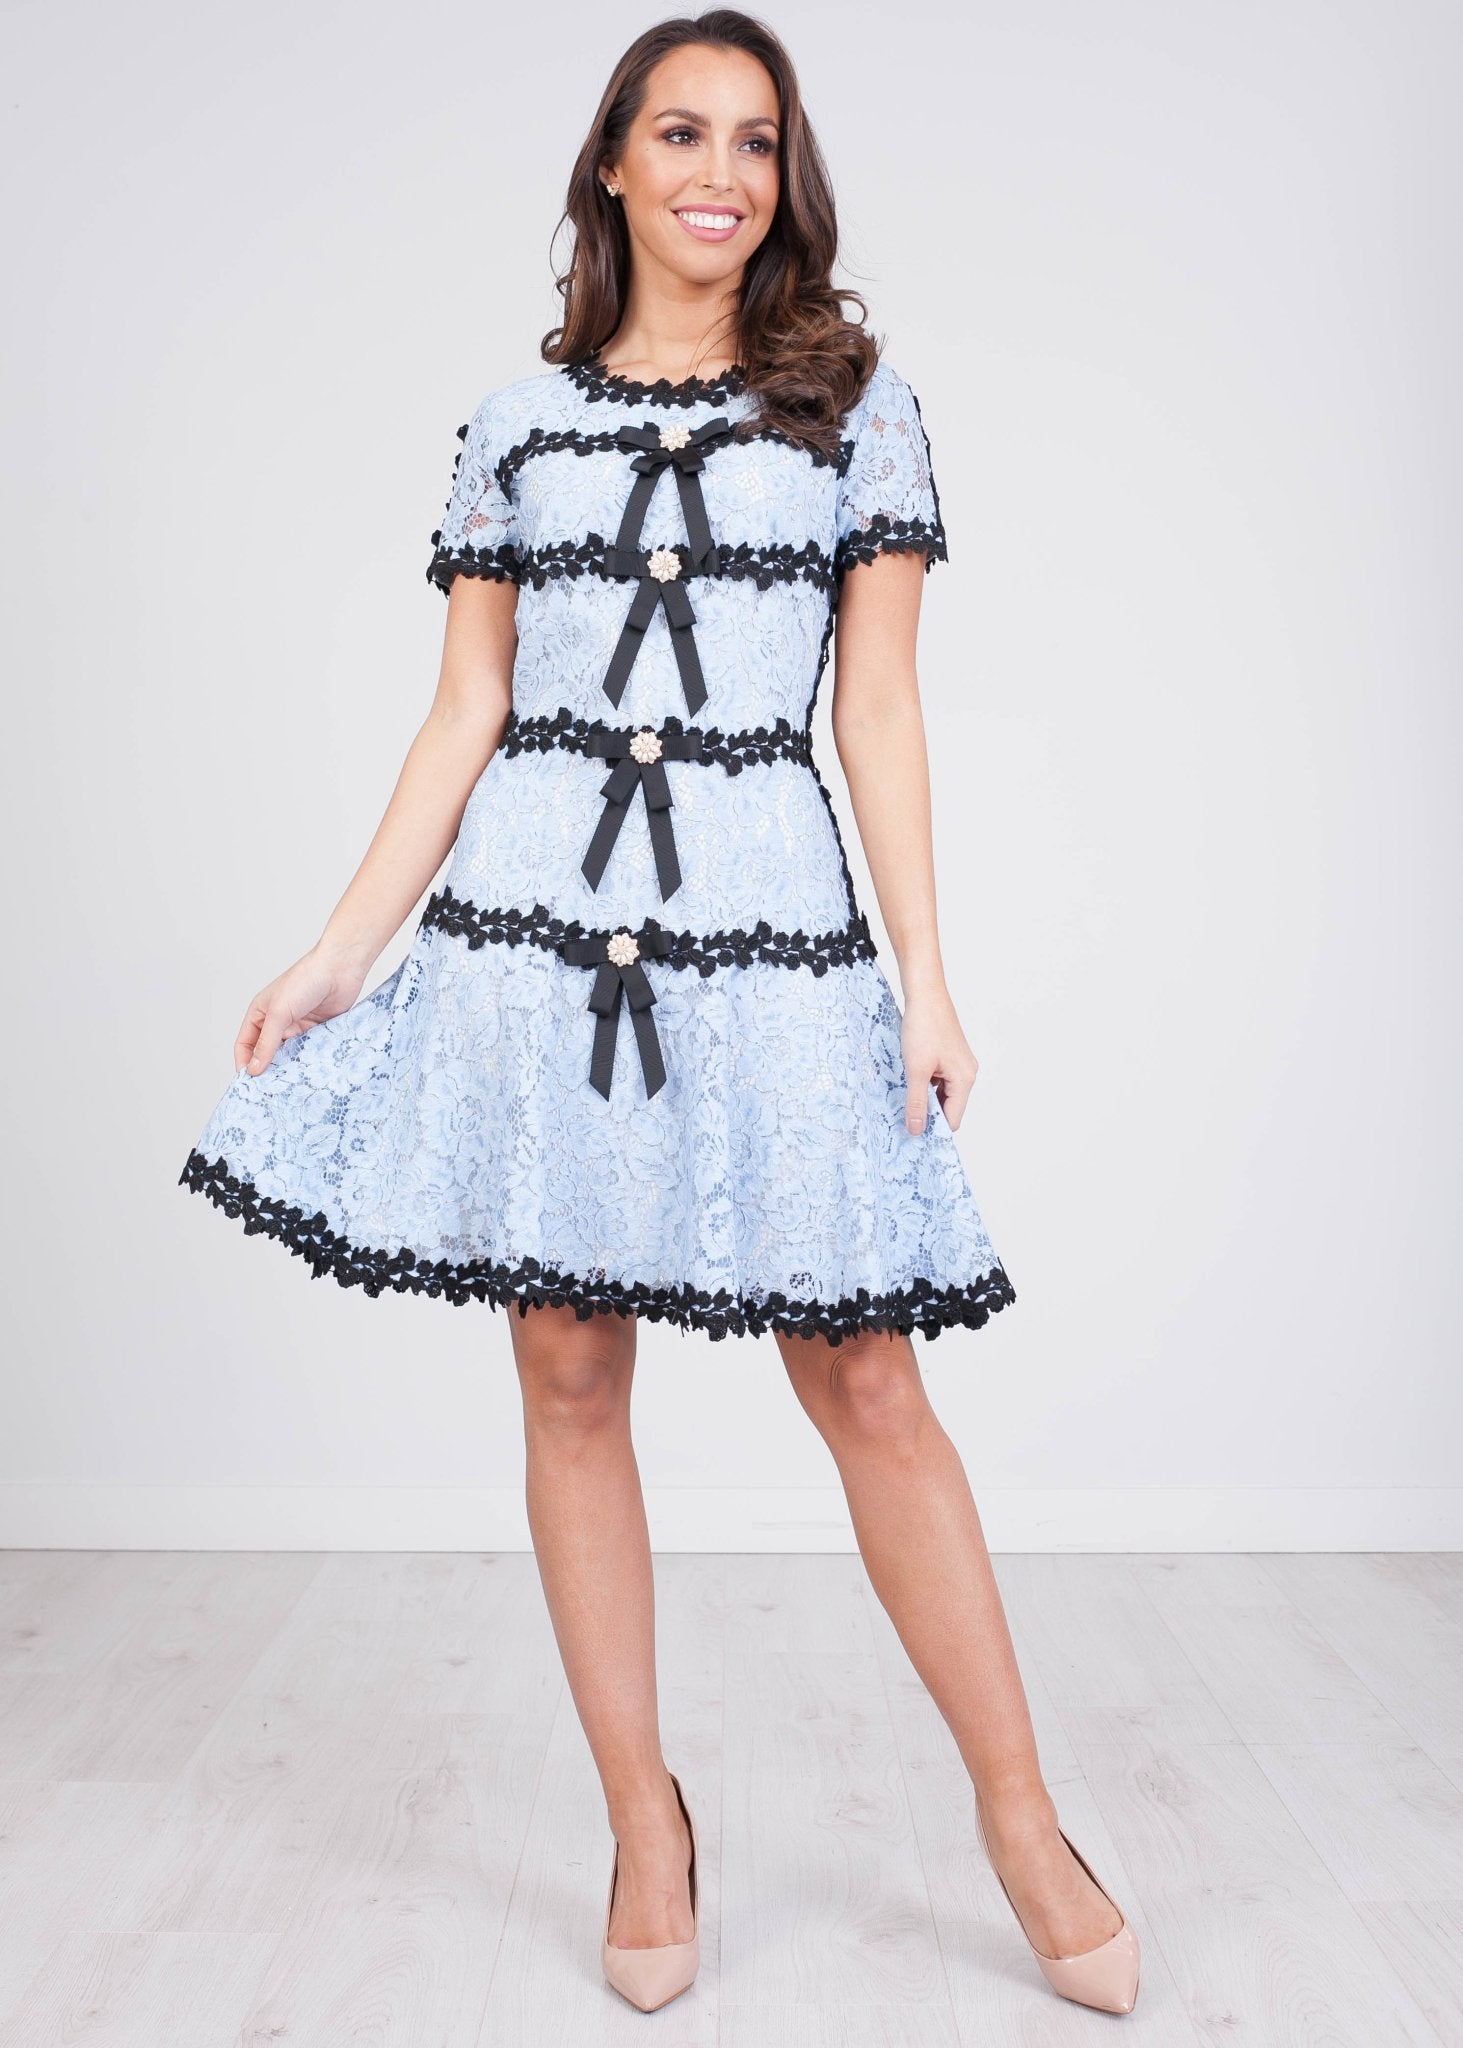 Marissa Blue & Black Lace Dress - The Walk in Wardrobe